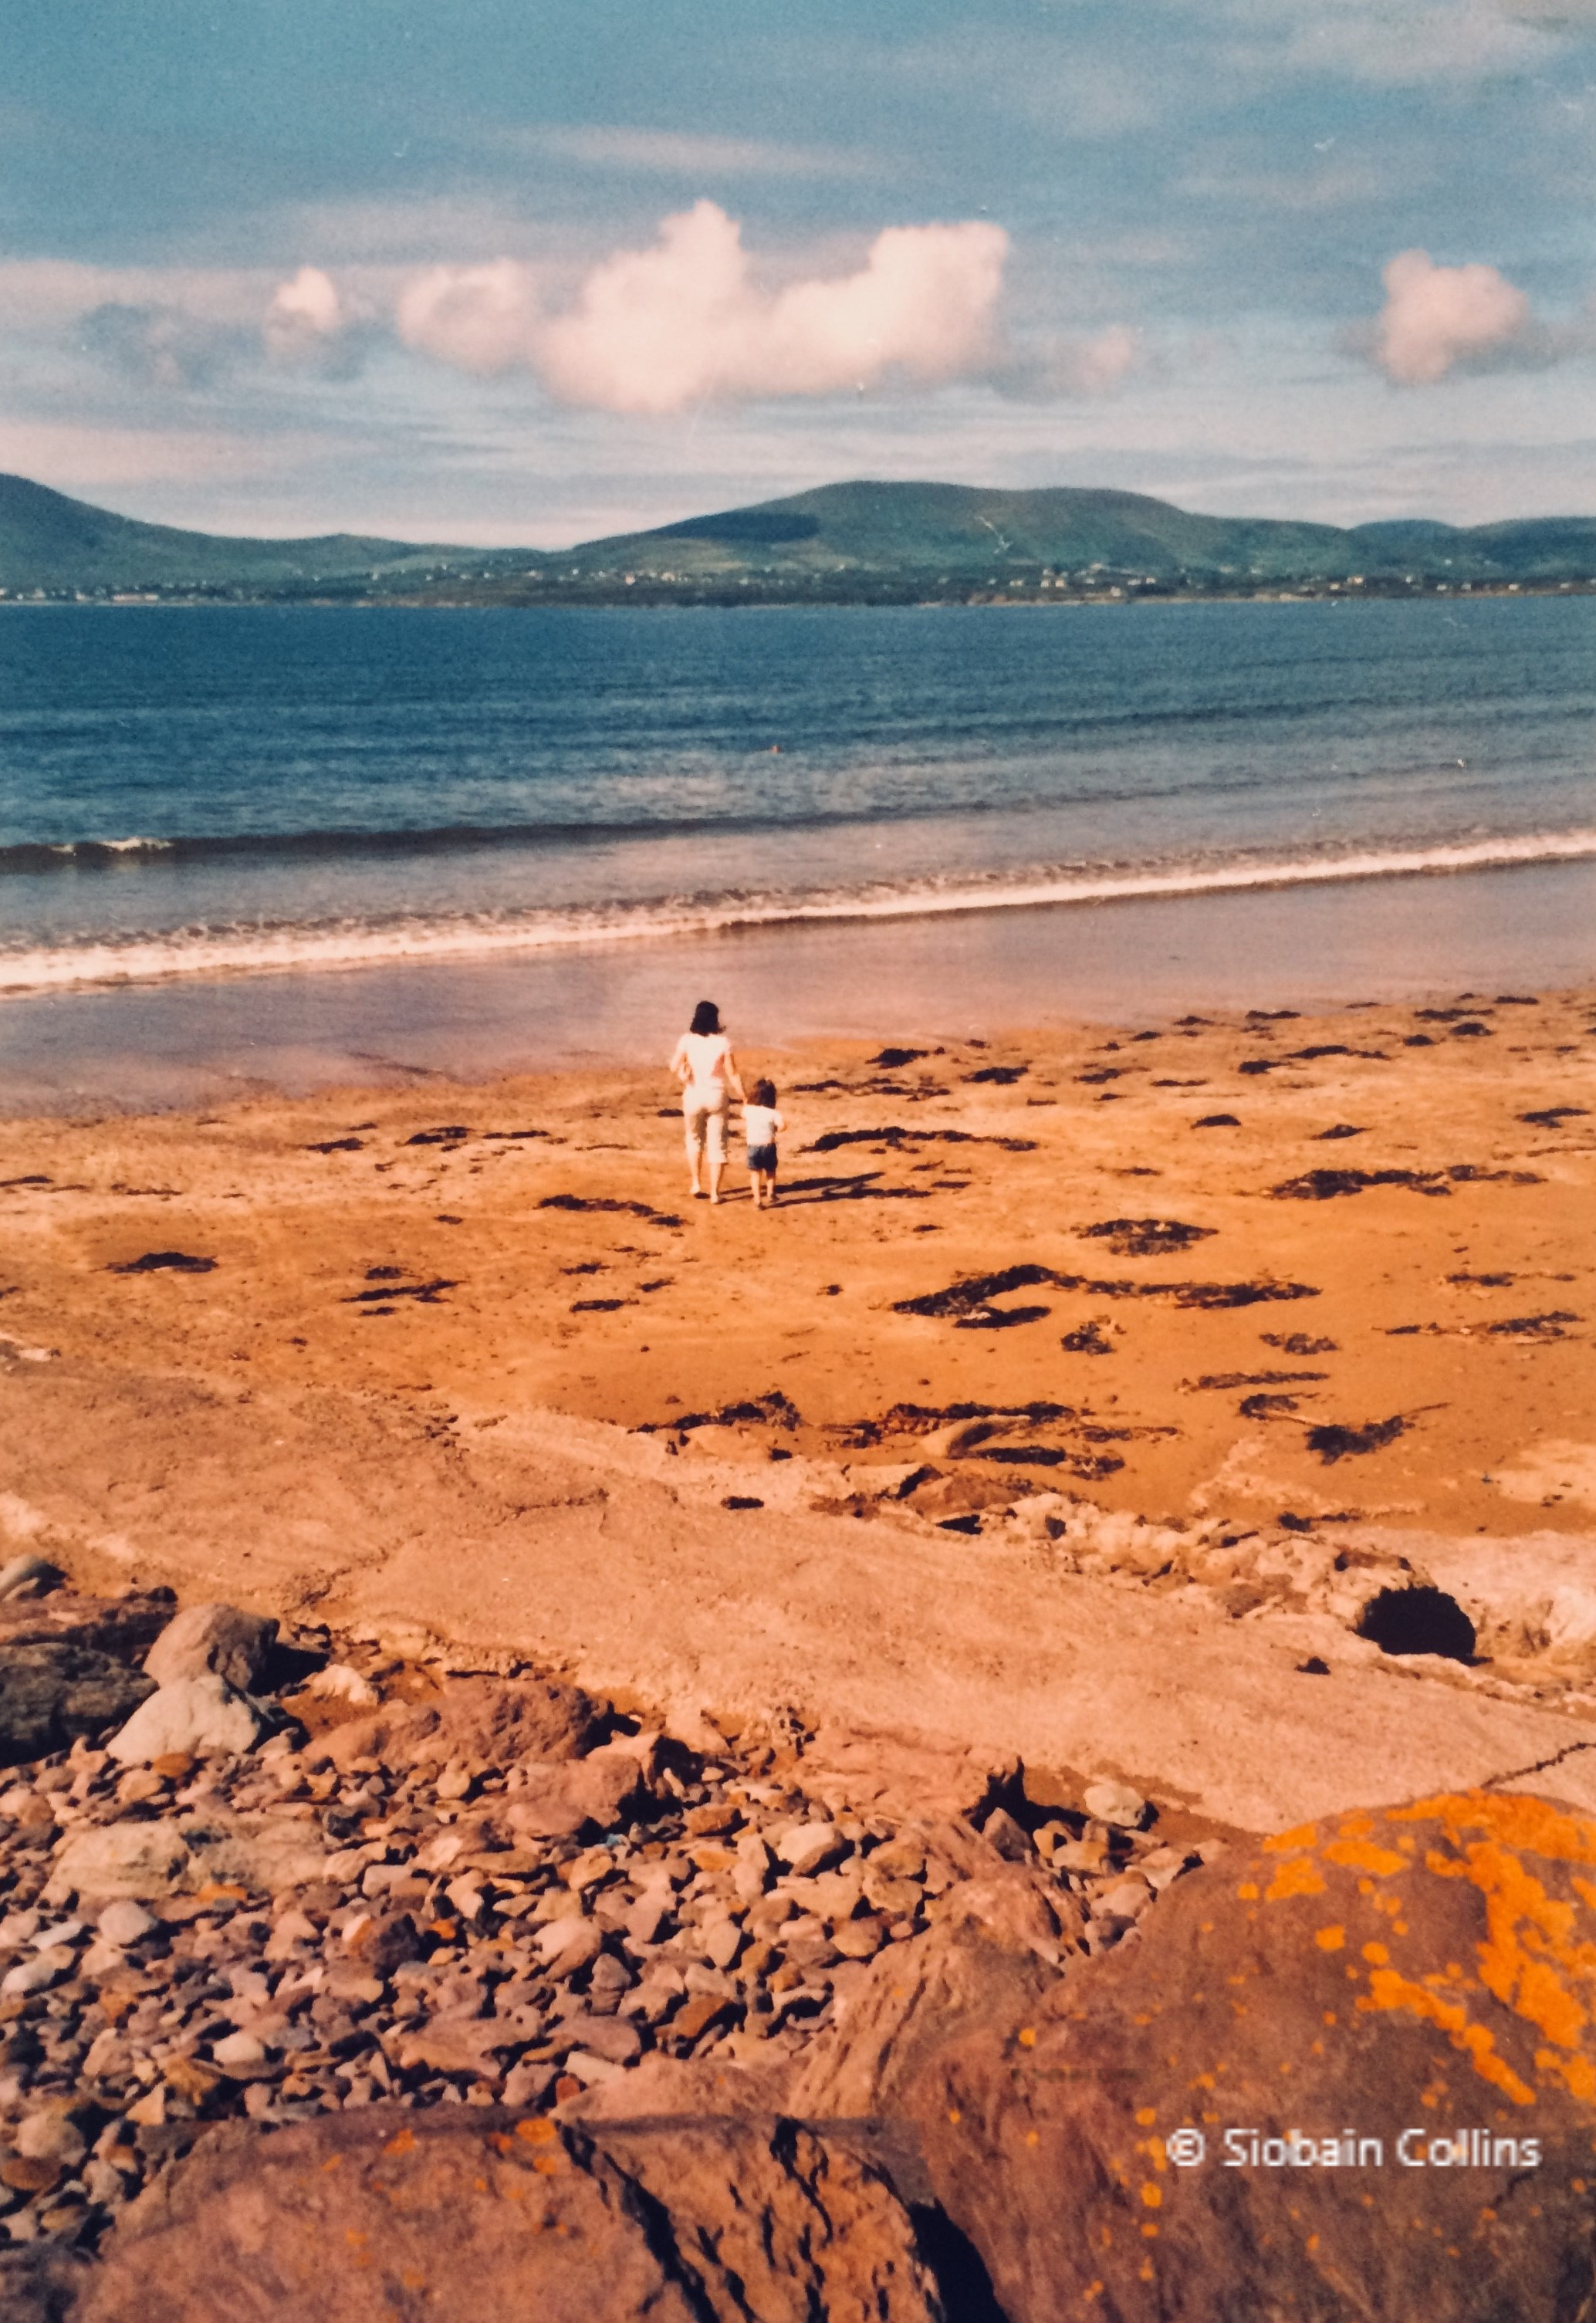 Irish beach with hills in the background, and shoreline in the foreground, a teenager and a child both female holding hands